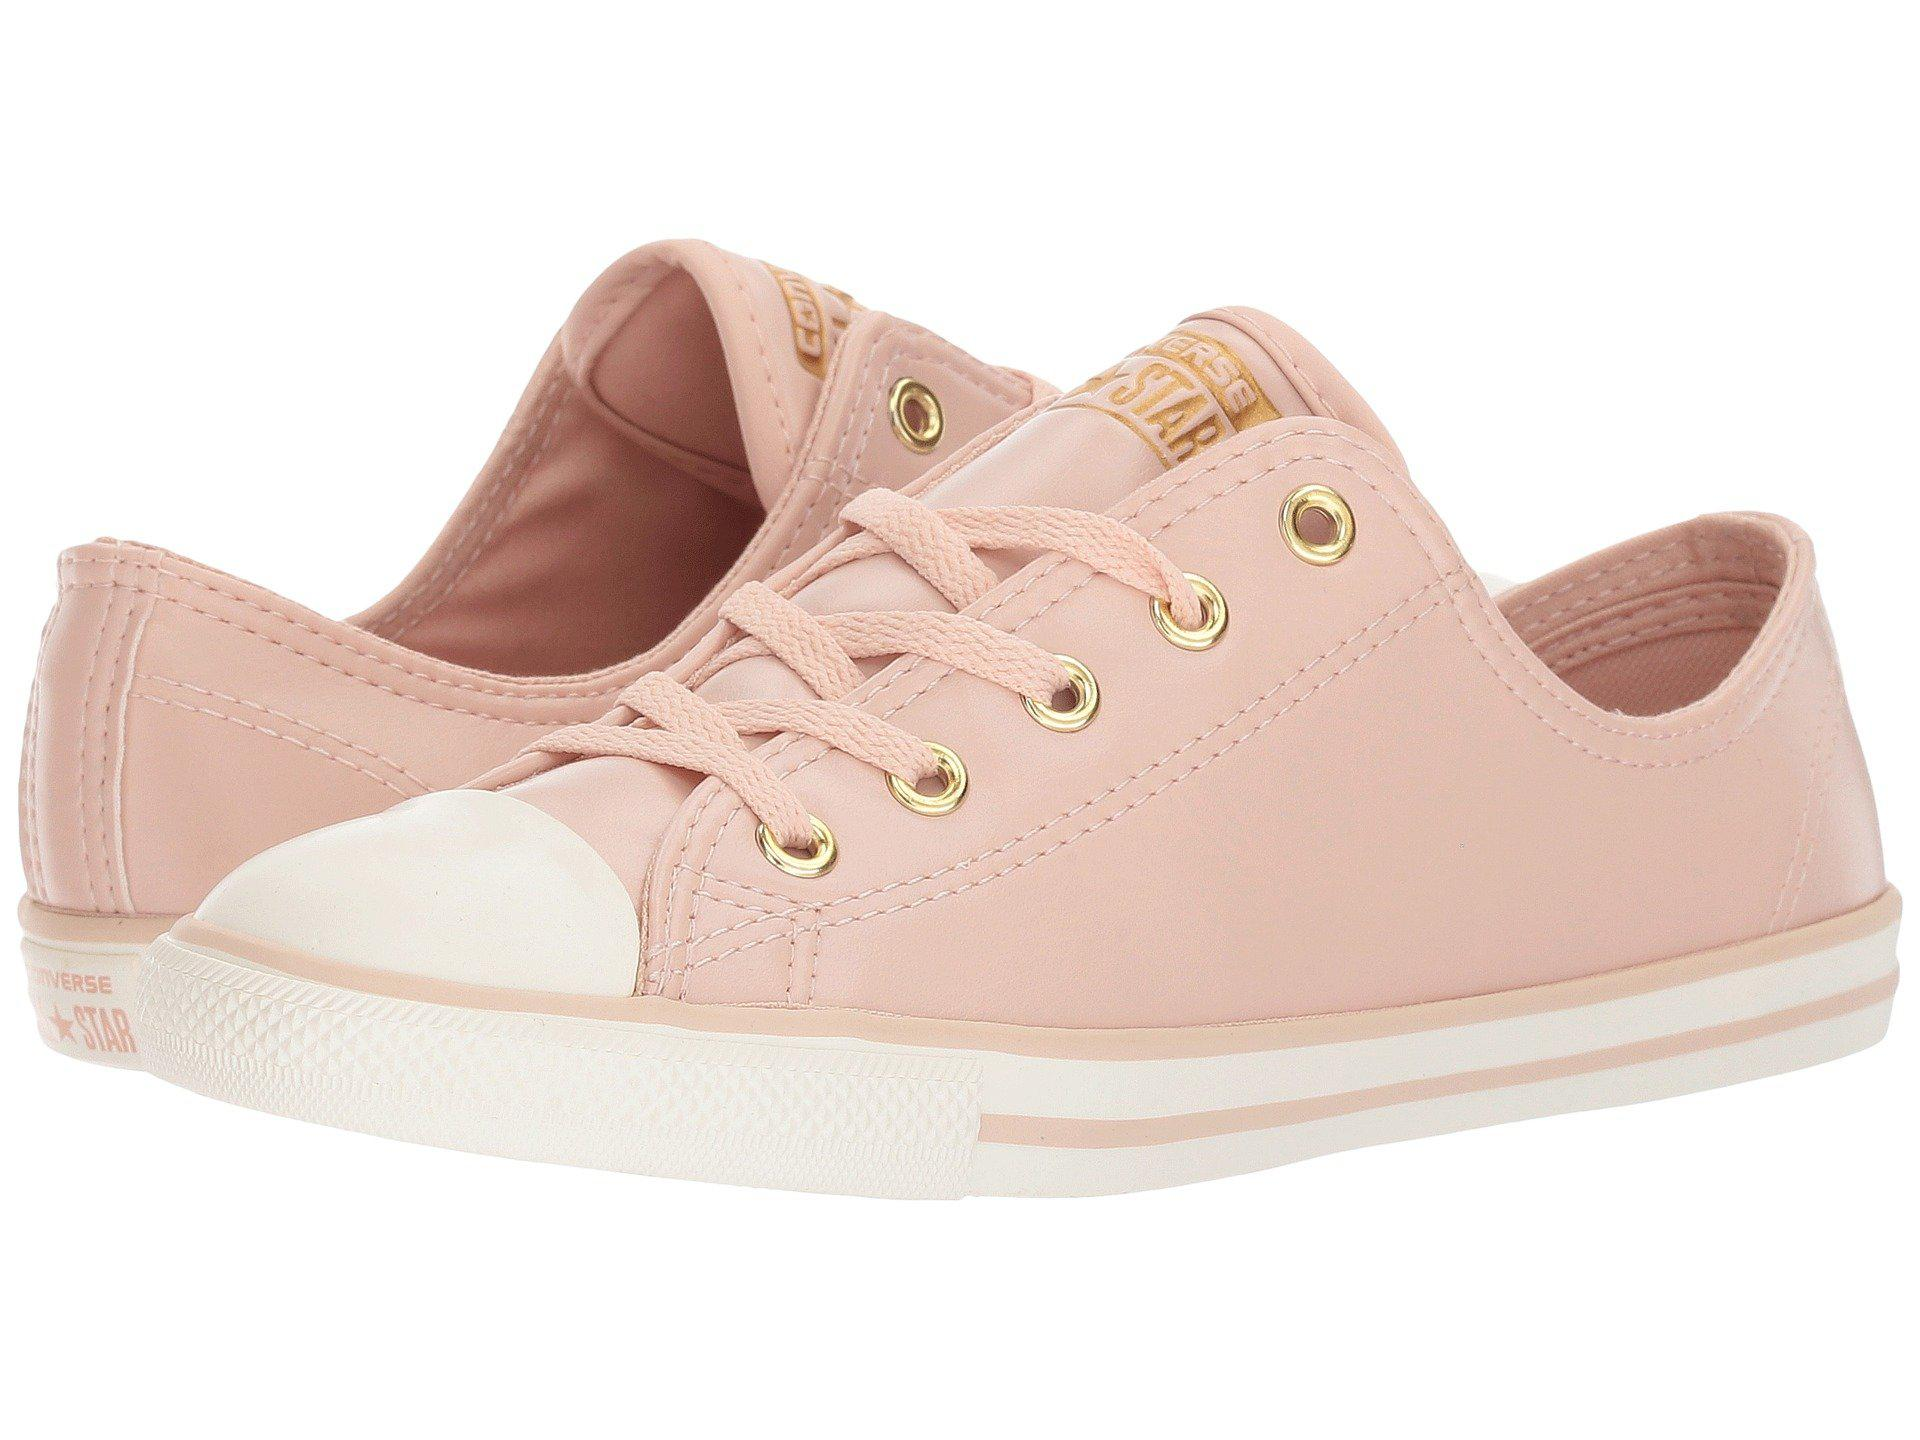 Converse Chuck Taylor All Star Dainty Craft SL(Women's) -Dusk Pink/Gold/Egret Very Cheap Price Outlet For Cheap 6onbYl84